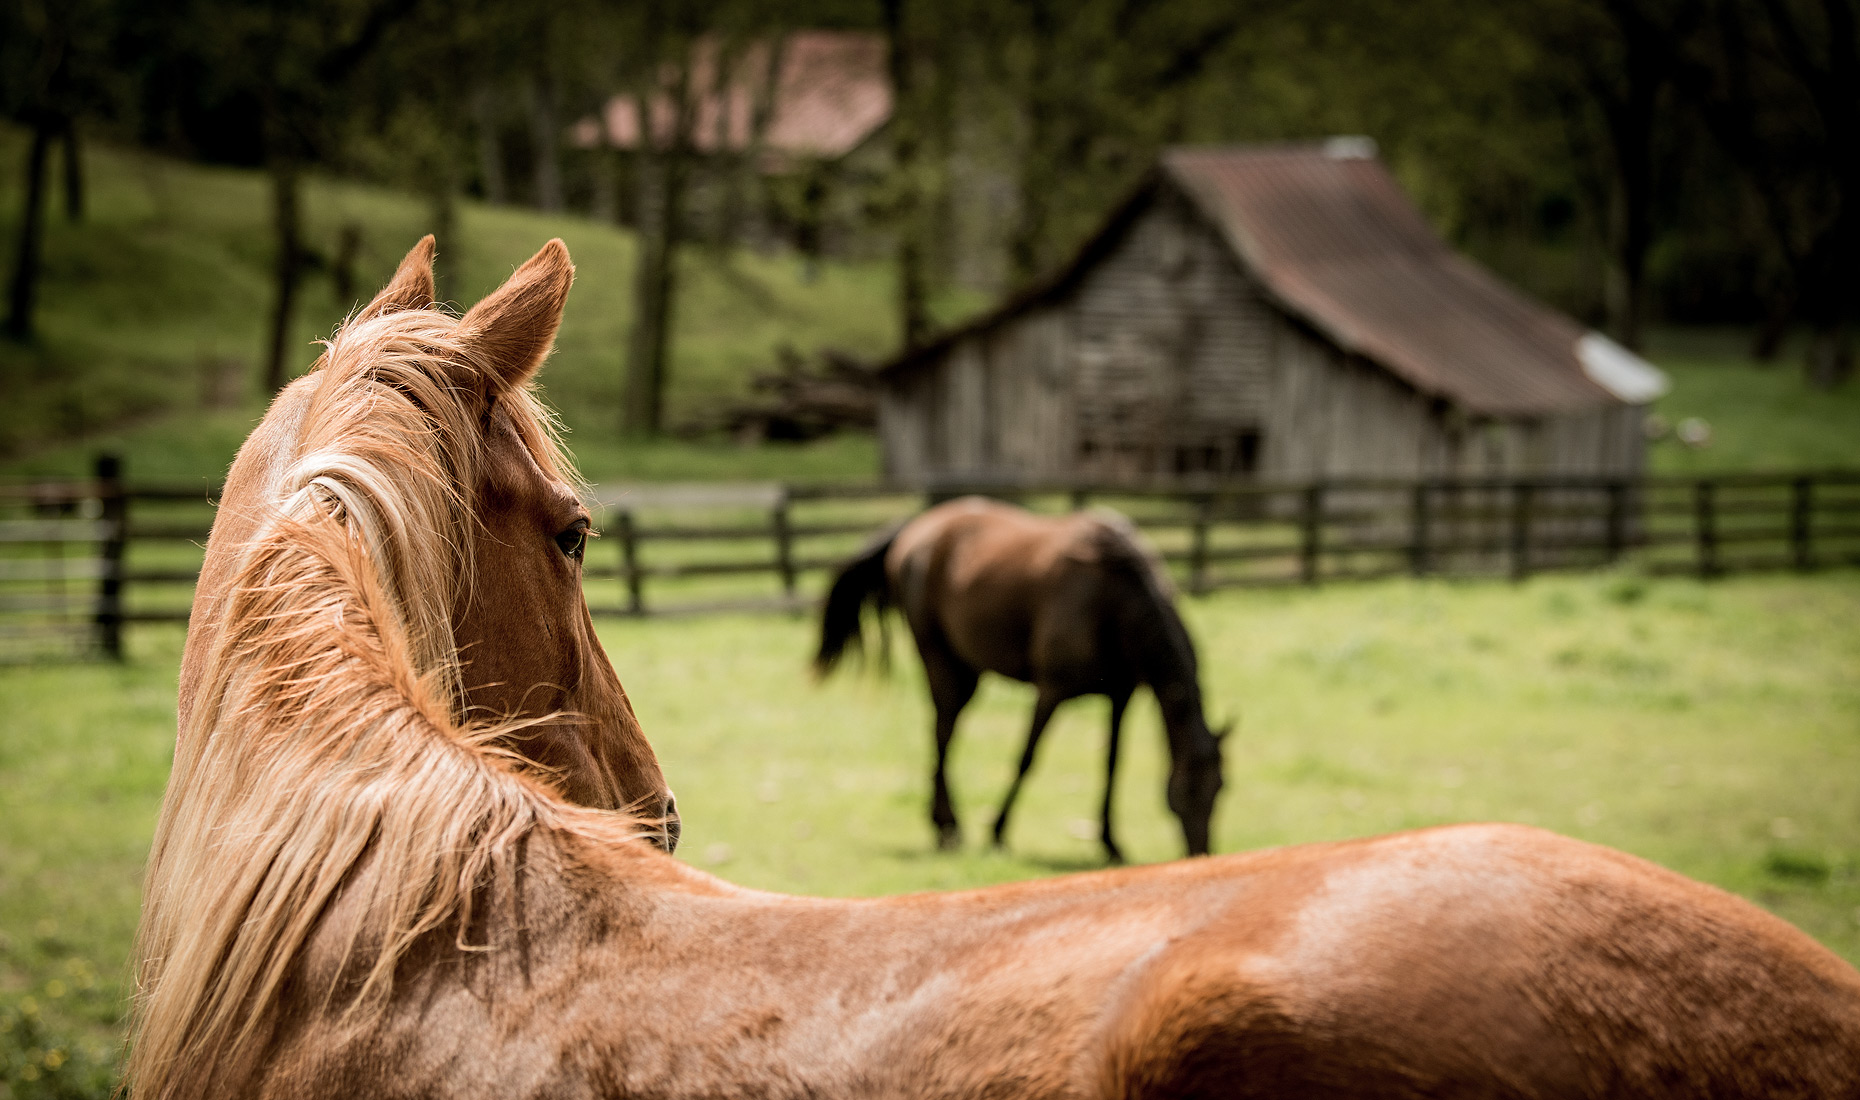 Horse Photography and Livestock Photography